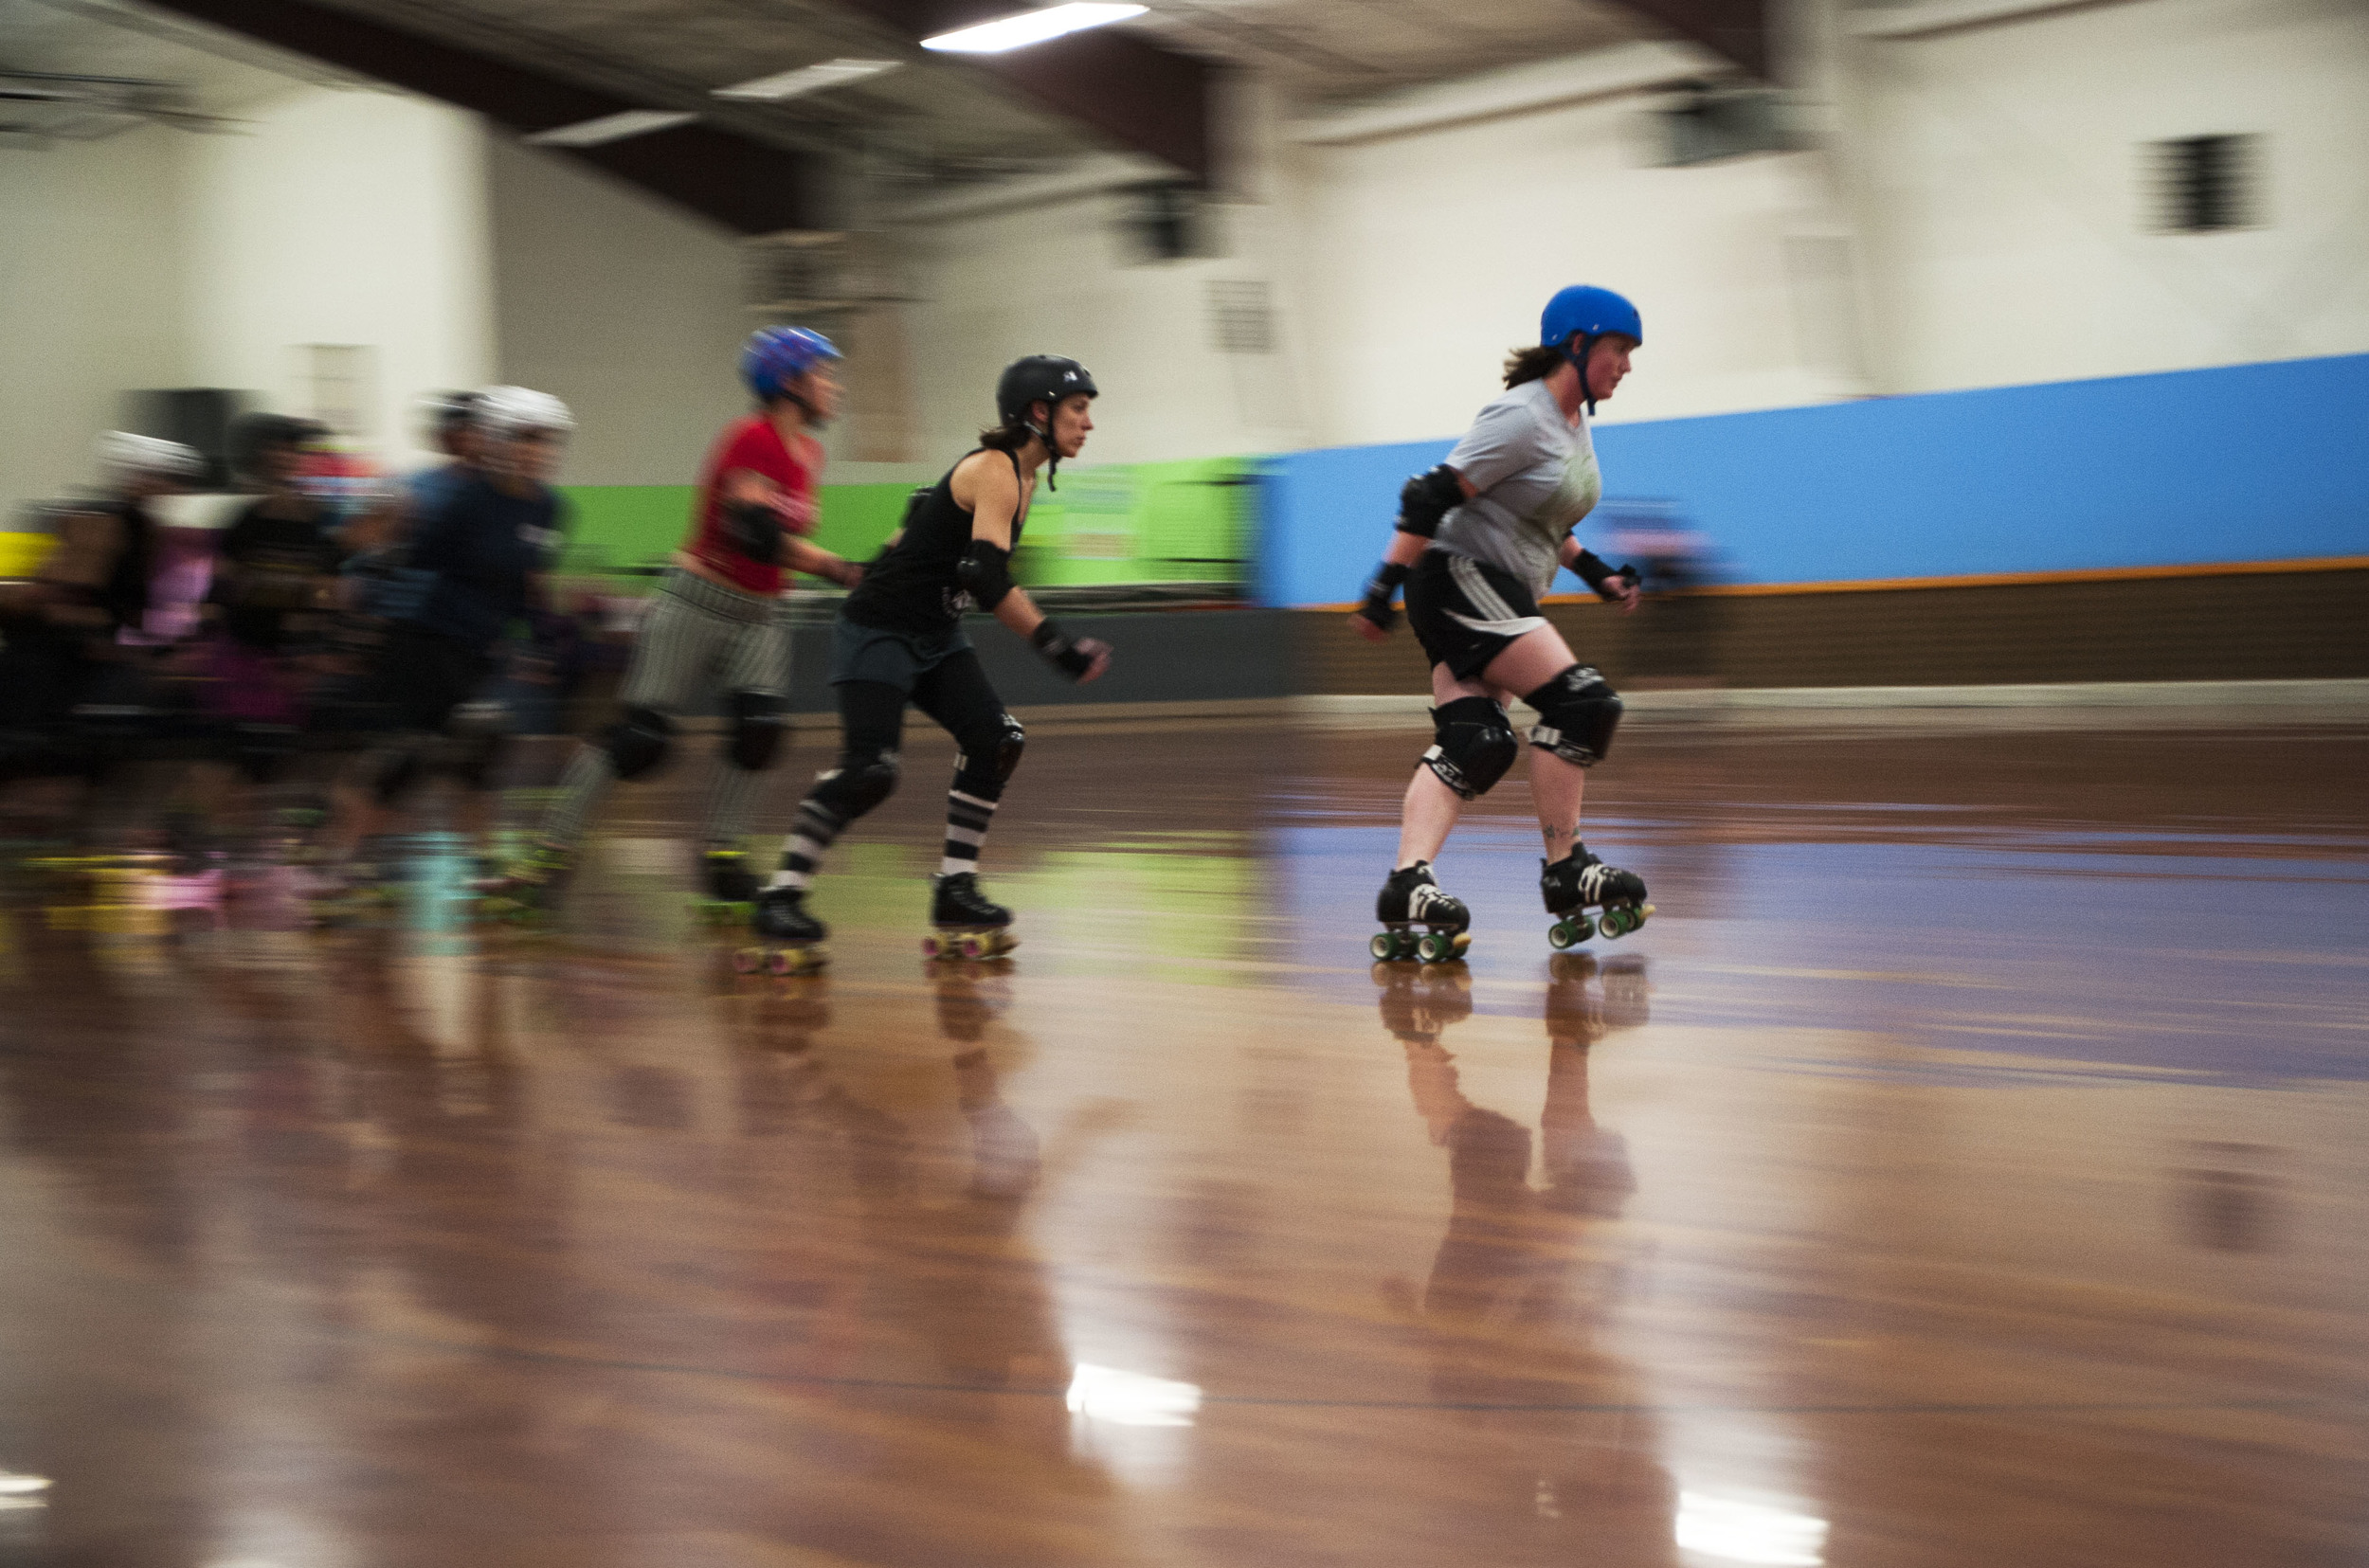 """The squeal of skates skidding along the polished wood floor reverberates throughout the skating rink. For Bellingham's Roller Betties this is a familiar sound. The Betties are a roller derby league comprised of six unique teams, all found on their website. Three days a week they don their skates and speed out on to the rink to practice and learn skills that will help them beat their opponents during their next bout.""""You've got to be really on top of your physical fitness,"""" says Kimberly """"Kim Carnage"""" Carnahan (right). """"It's battle ballet. It's like, plié, now hit somebody."""""""